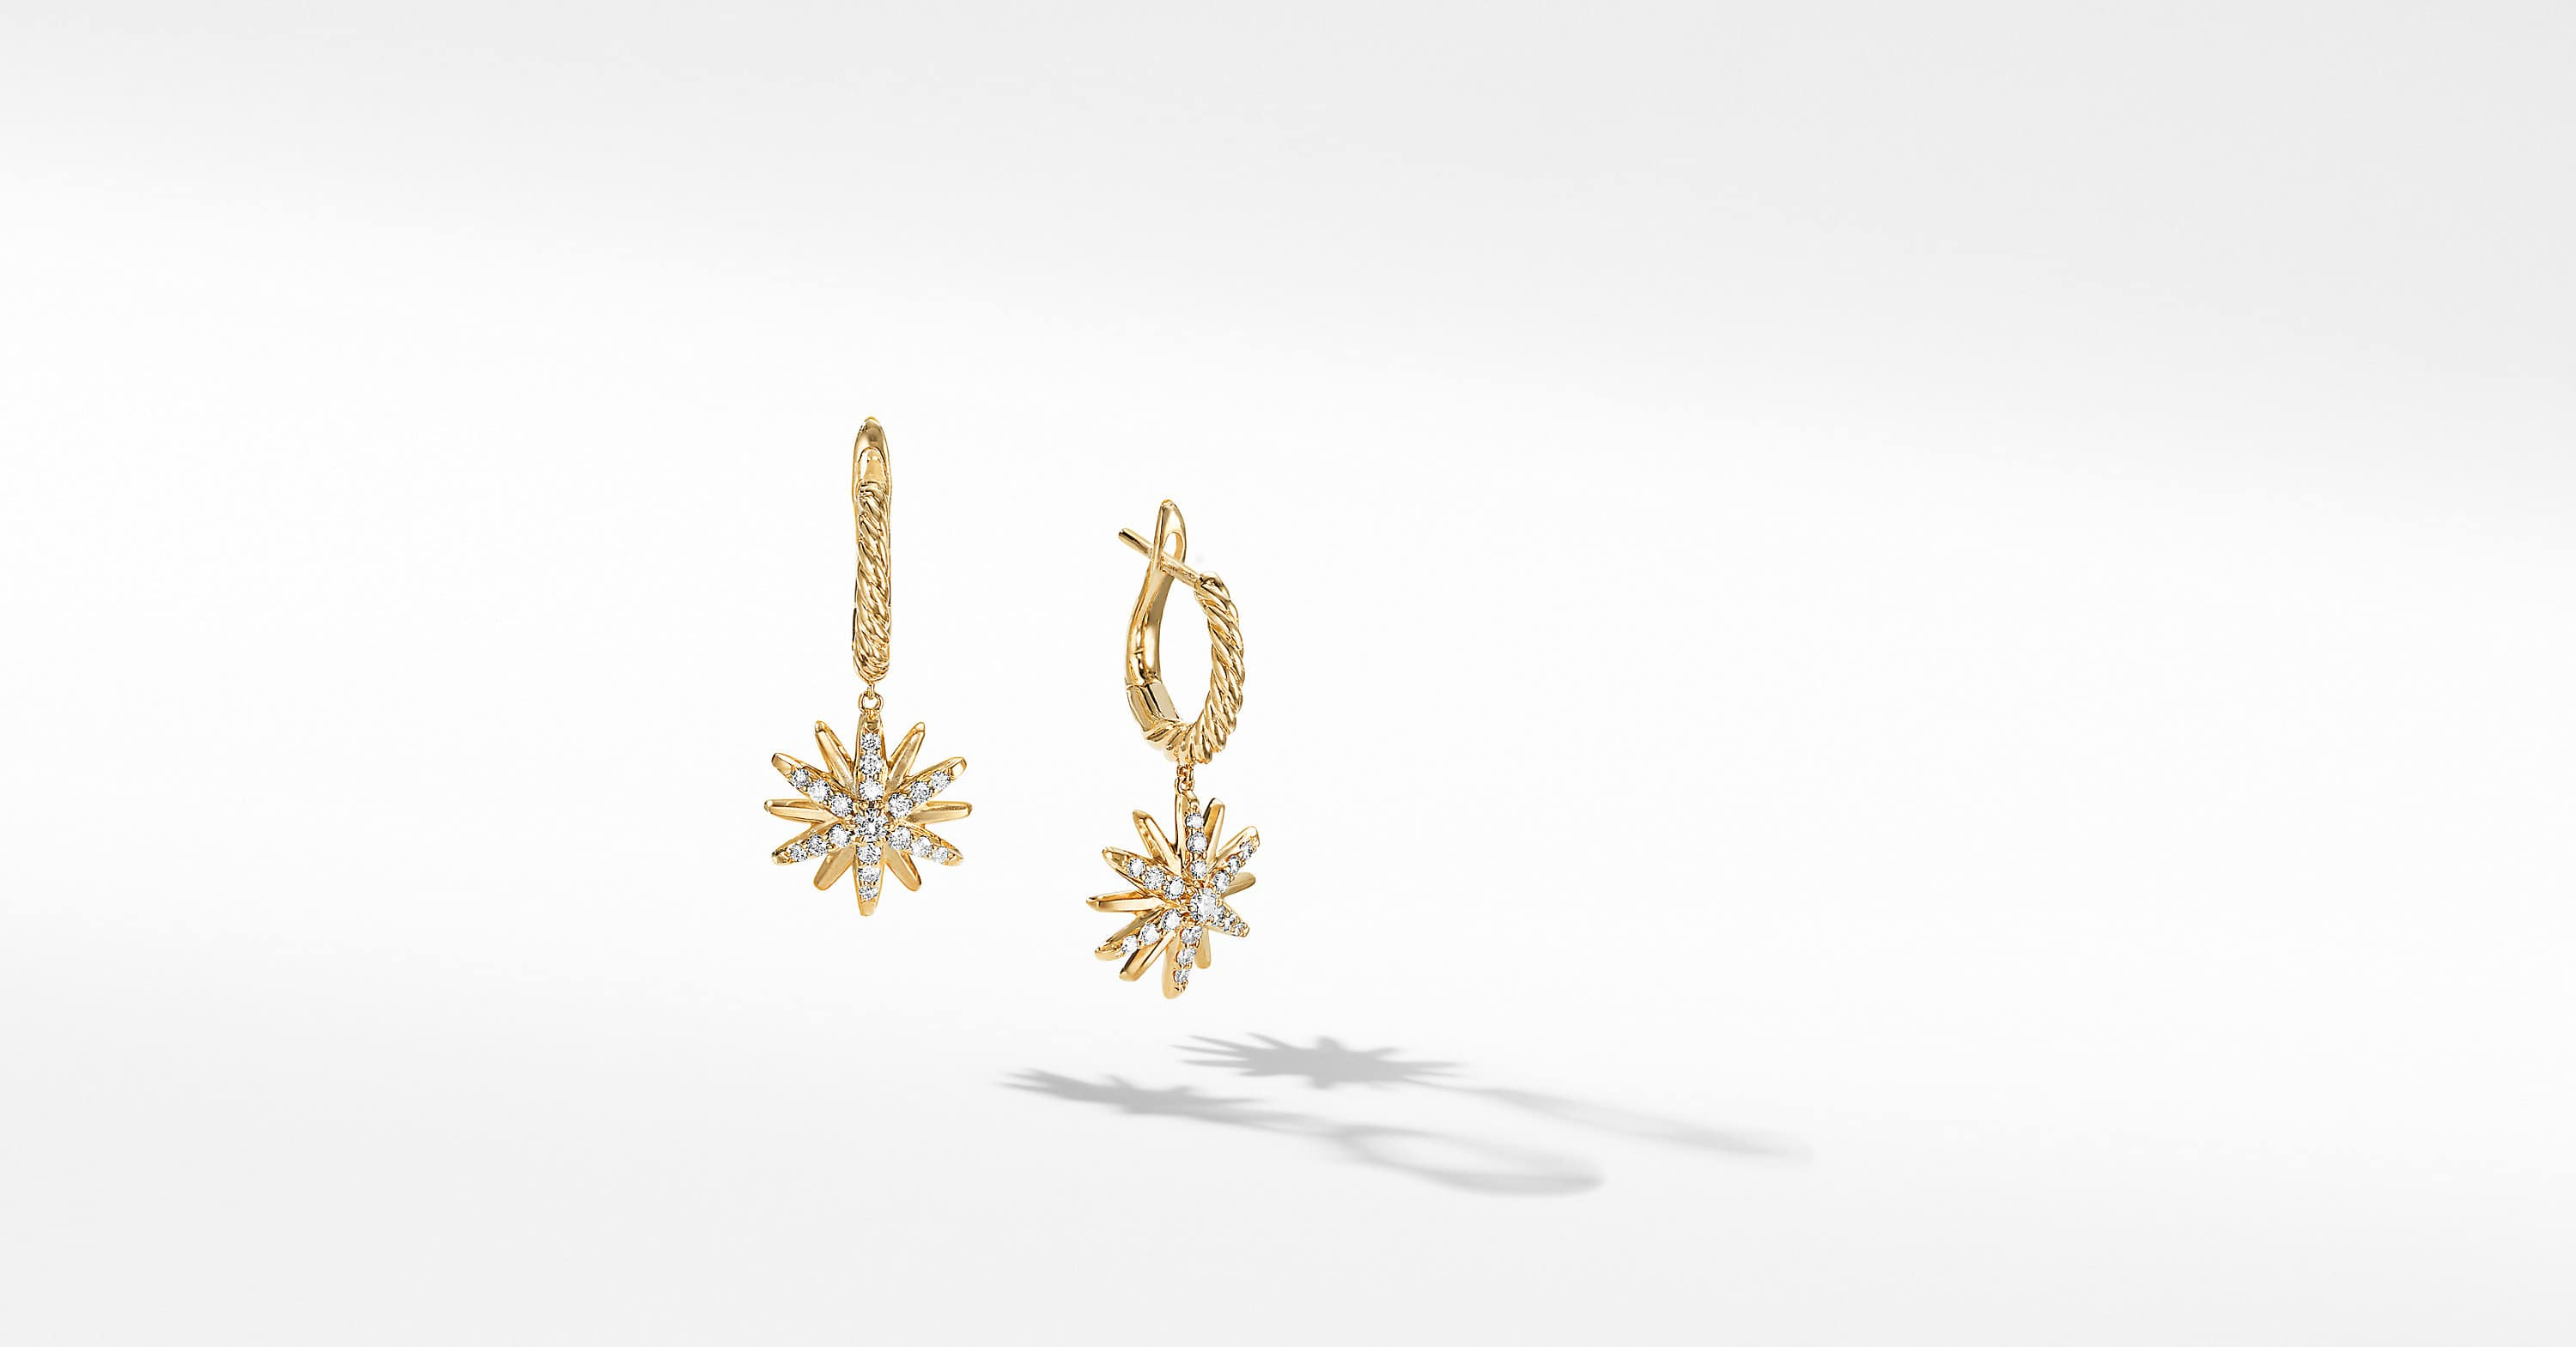 Starburst Drop Earrings in 18K Yellow Gold with Diamonds, 13mm